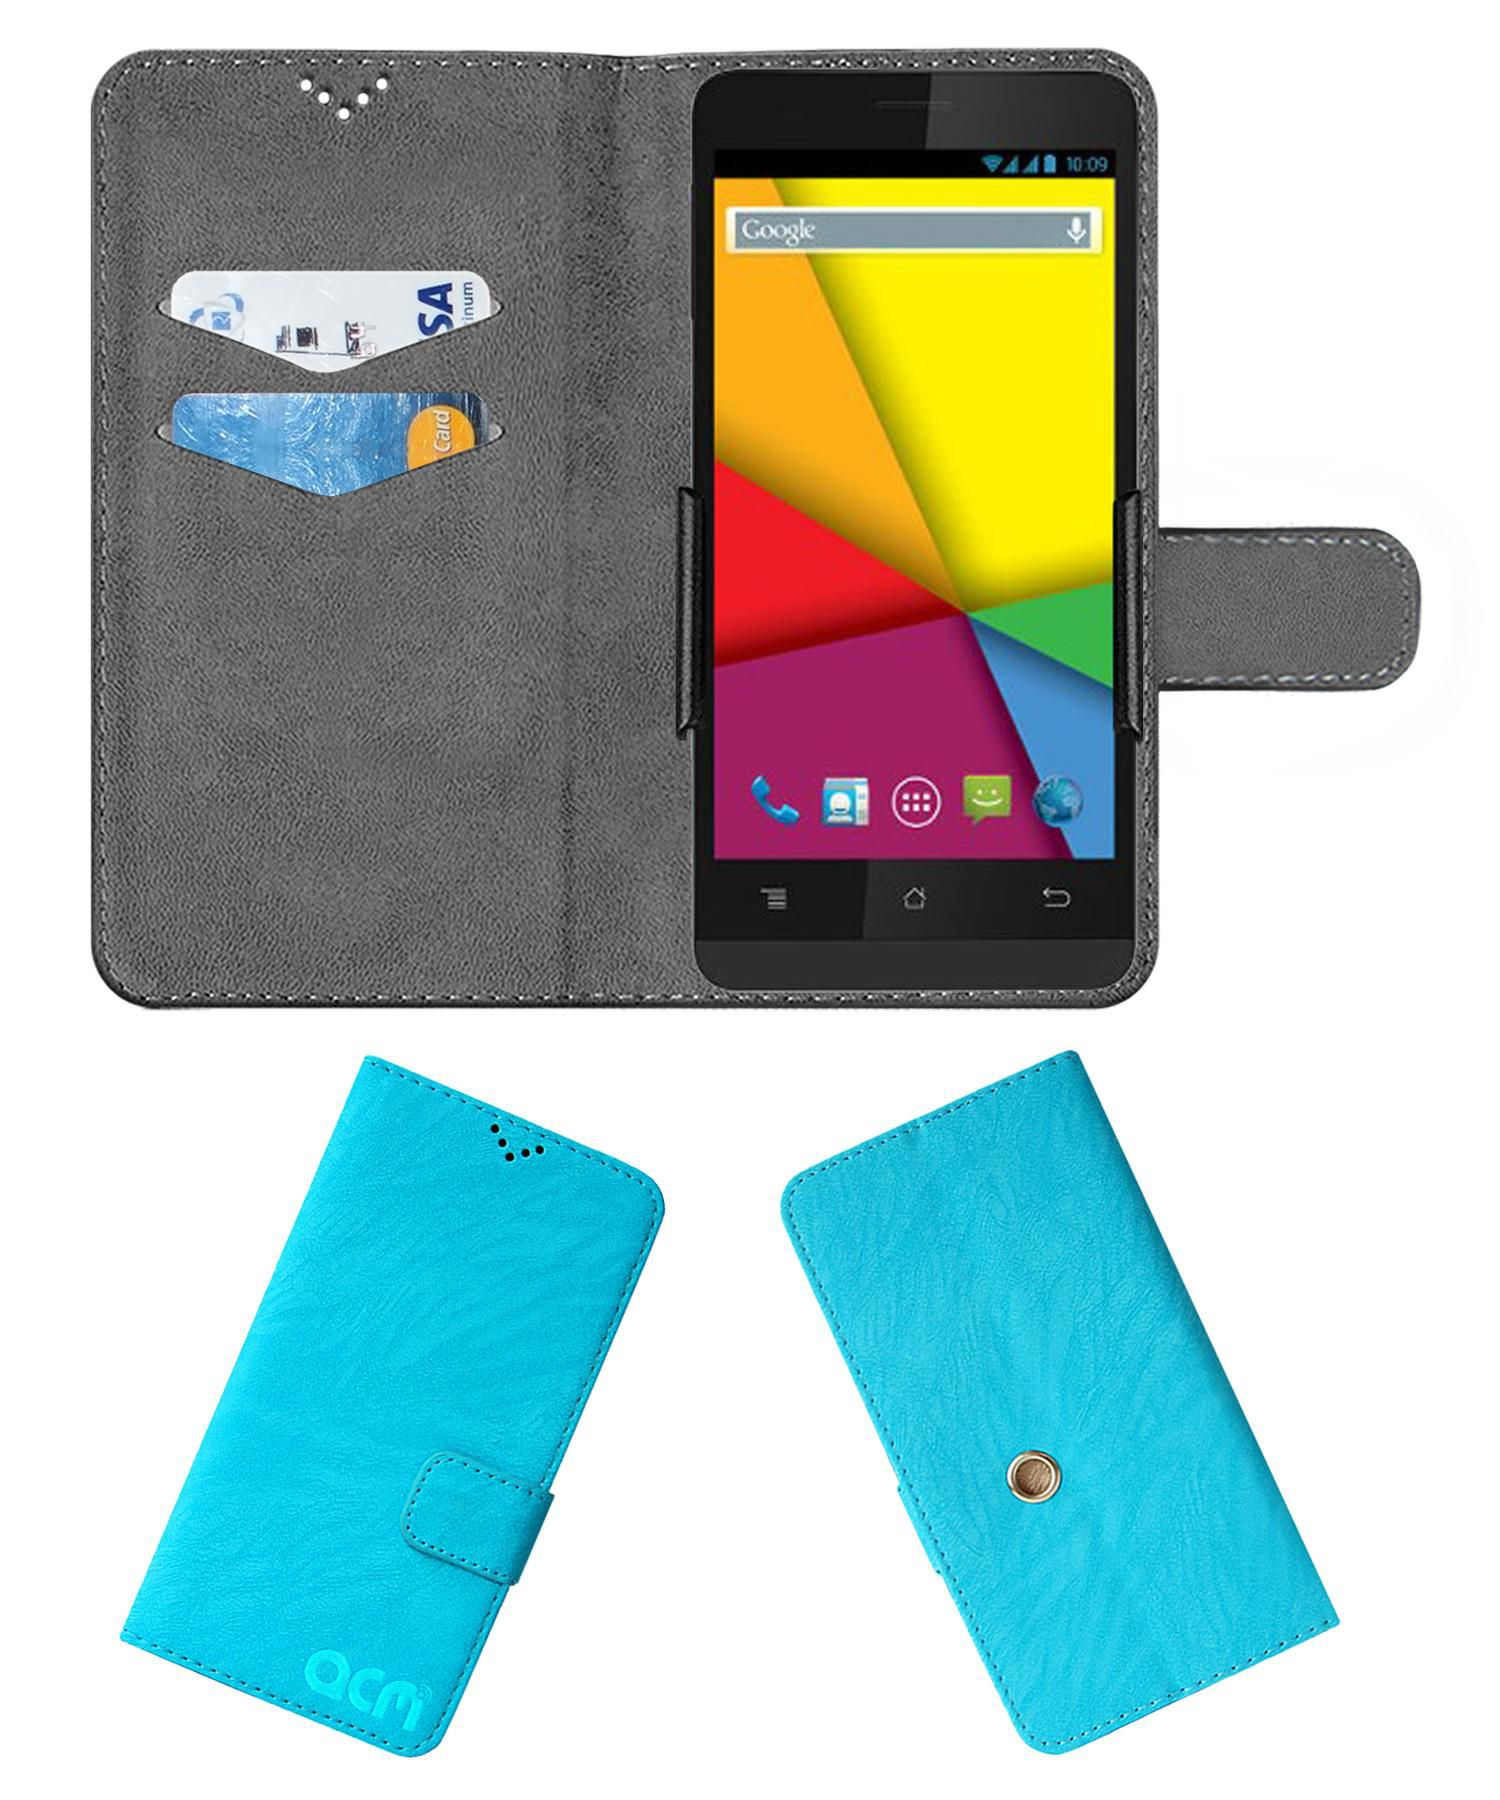 Karbonn Titanium S5 Ultra Flip Cover by ACM - Blue Clip holder to hold your mobile securely